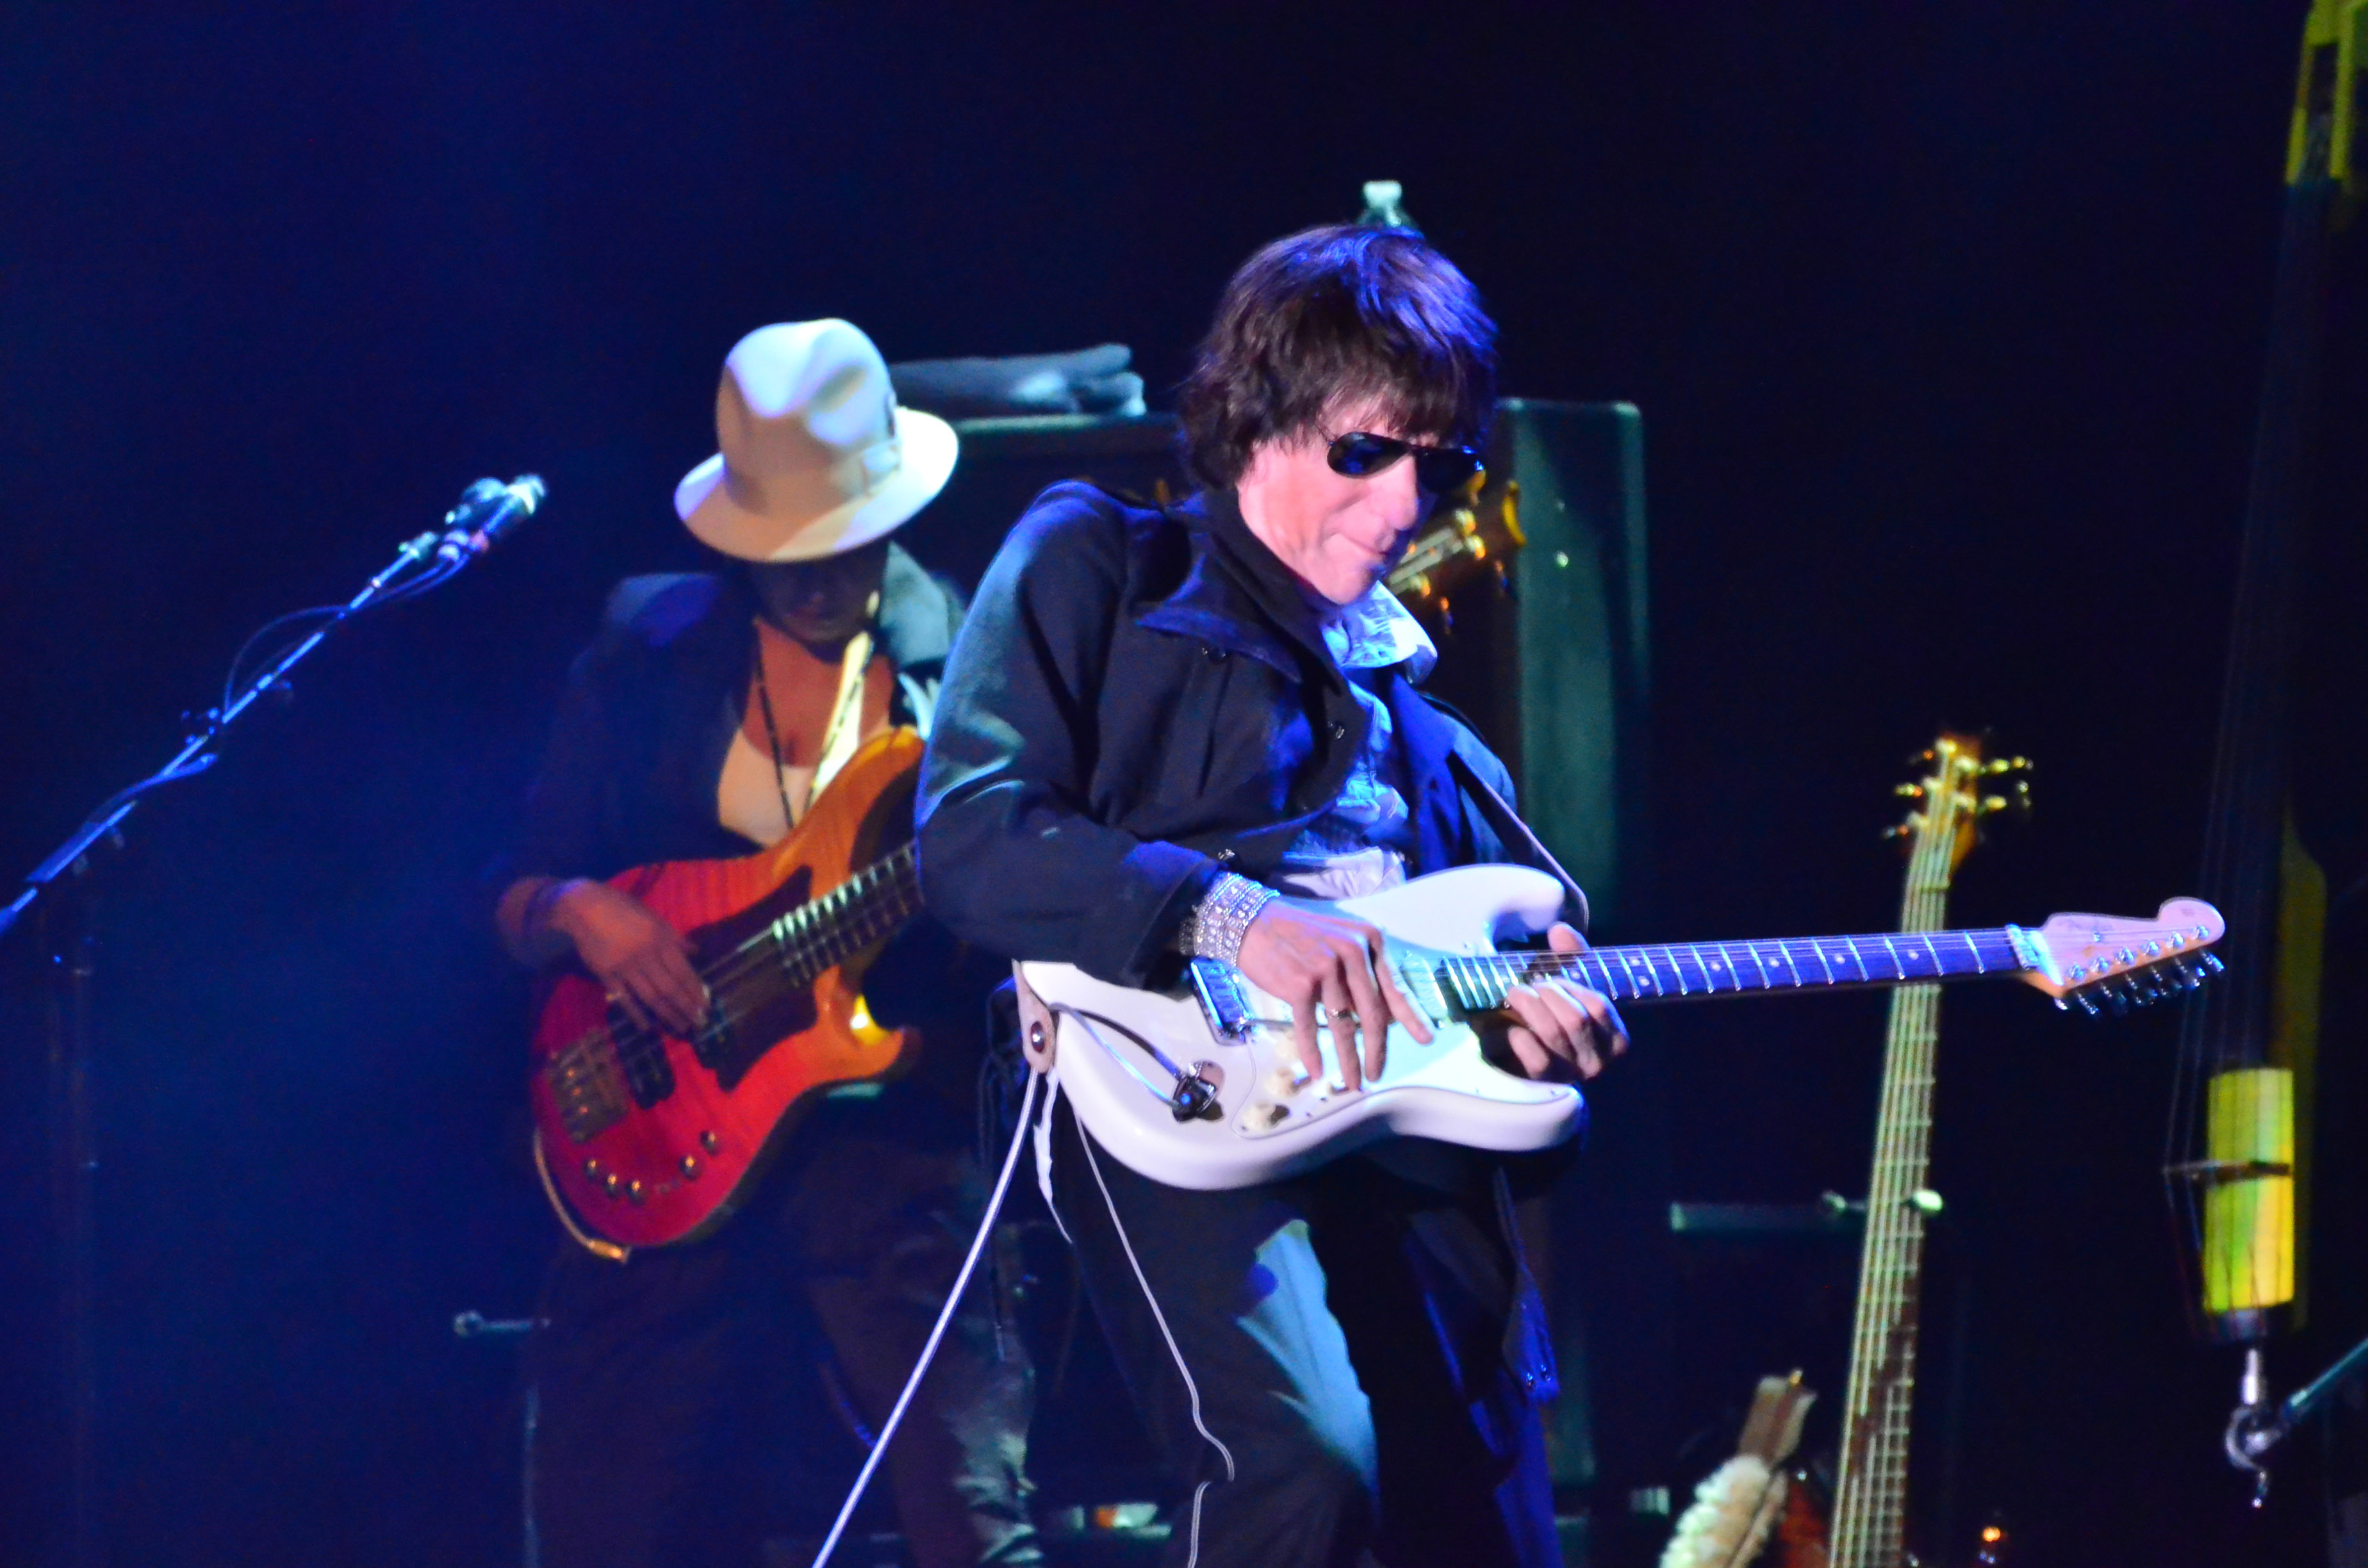 Jeff Beck at the Paramount in Huntington, ny on 4/15/2015.